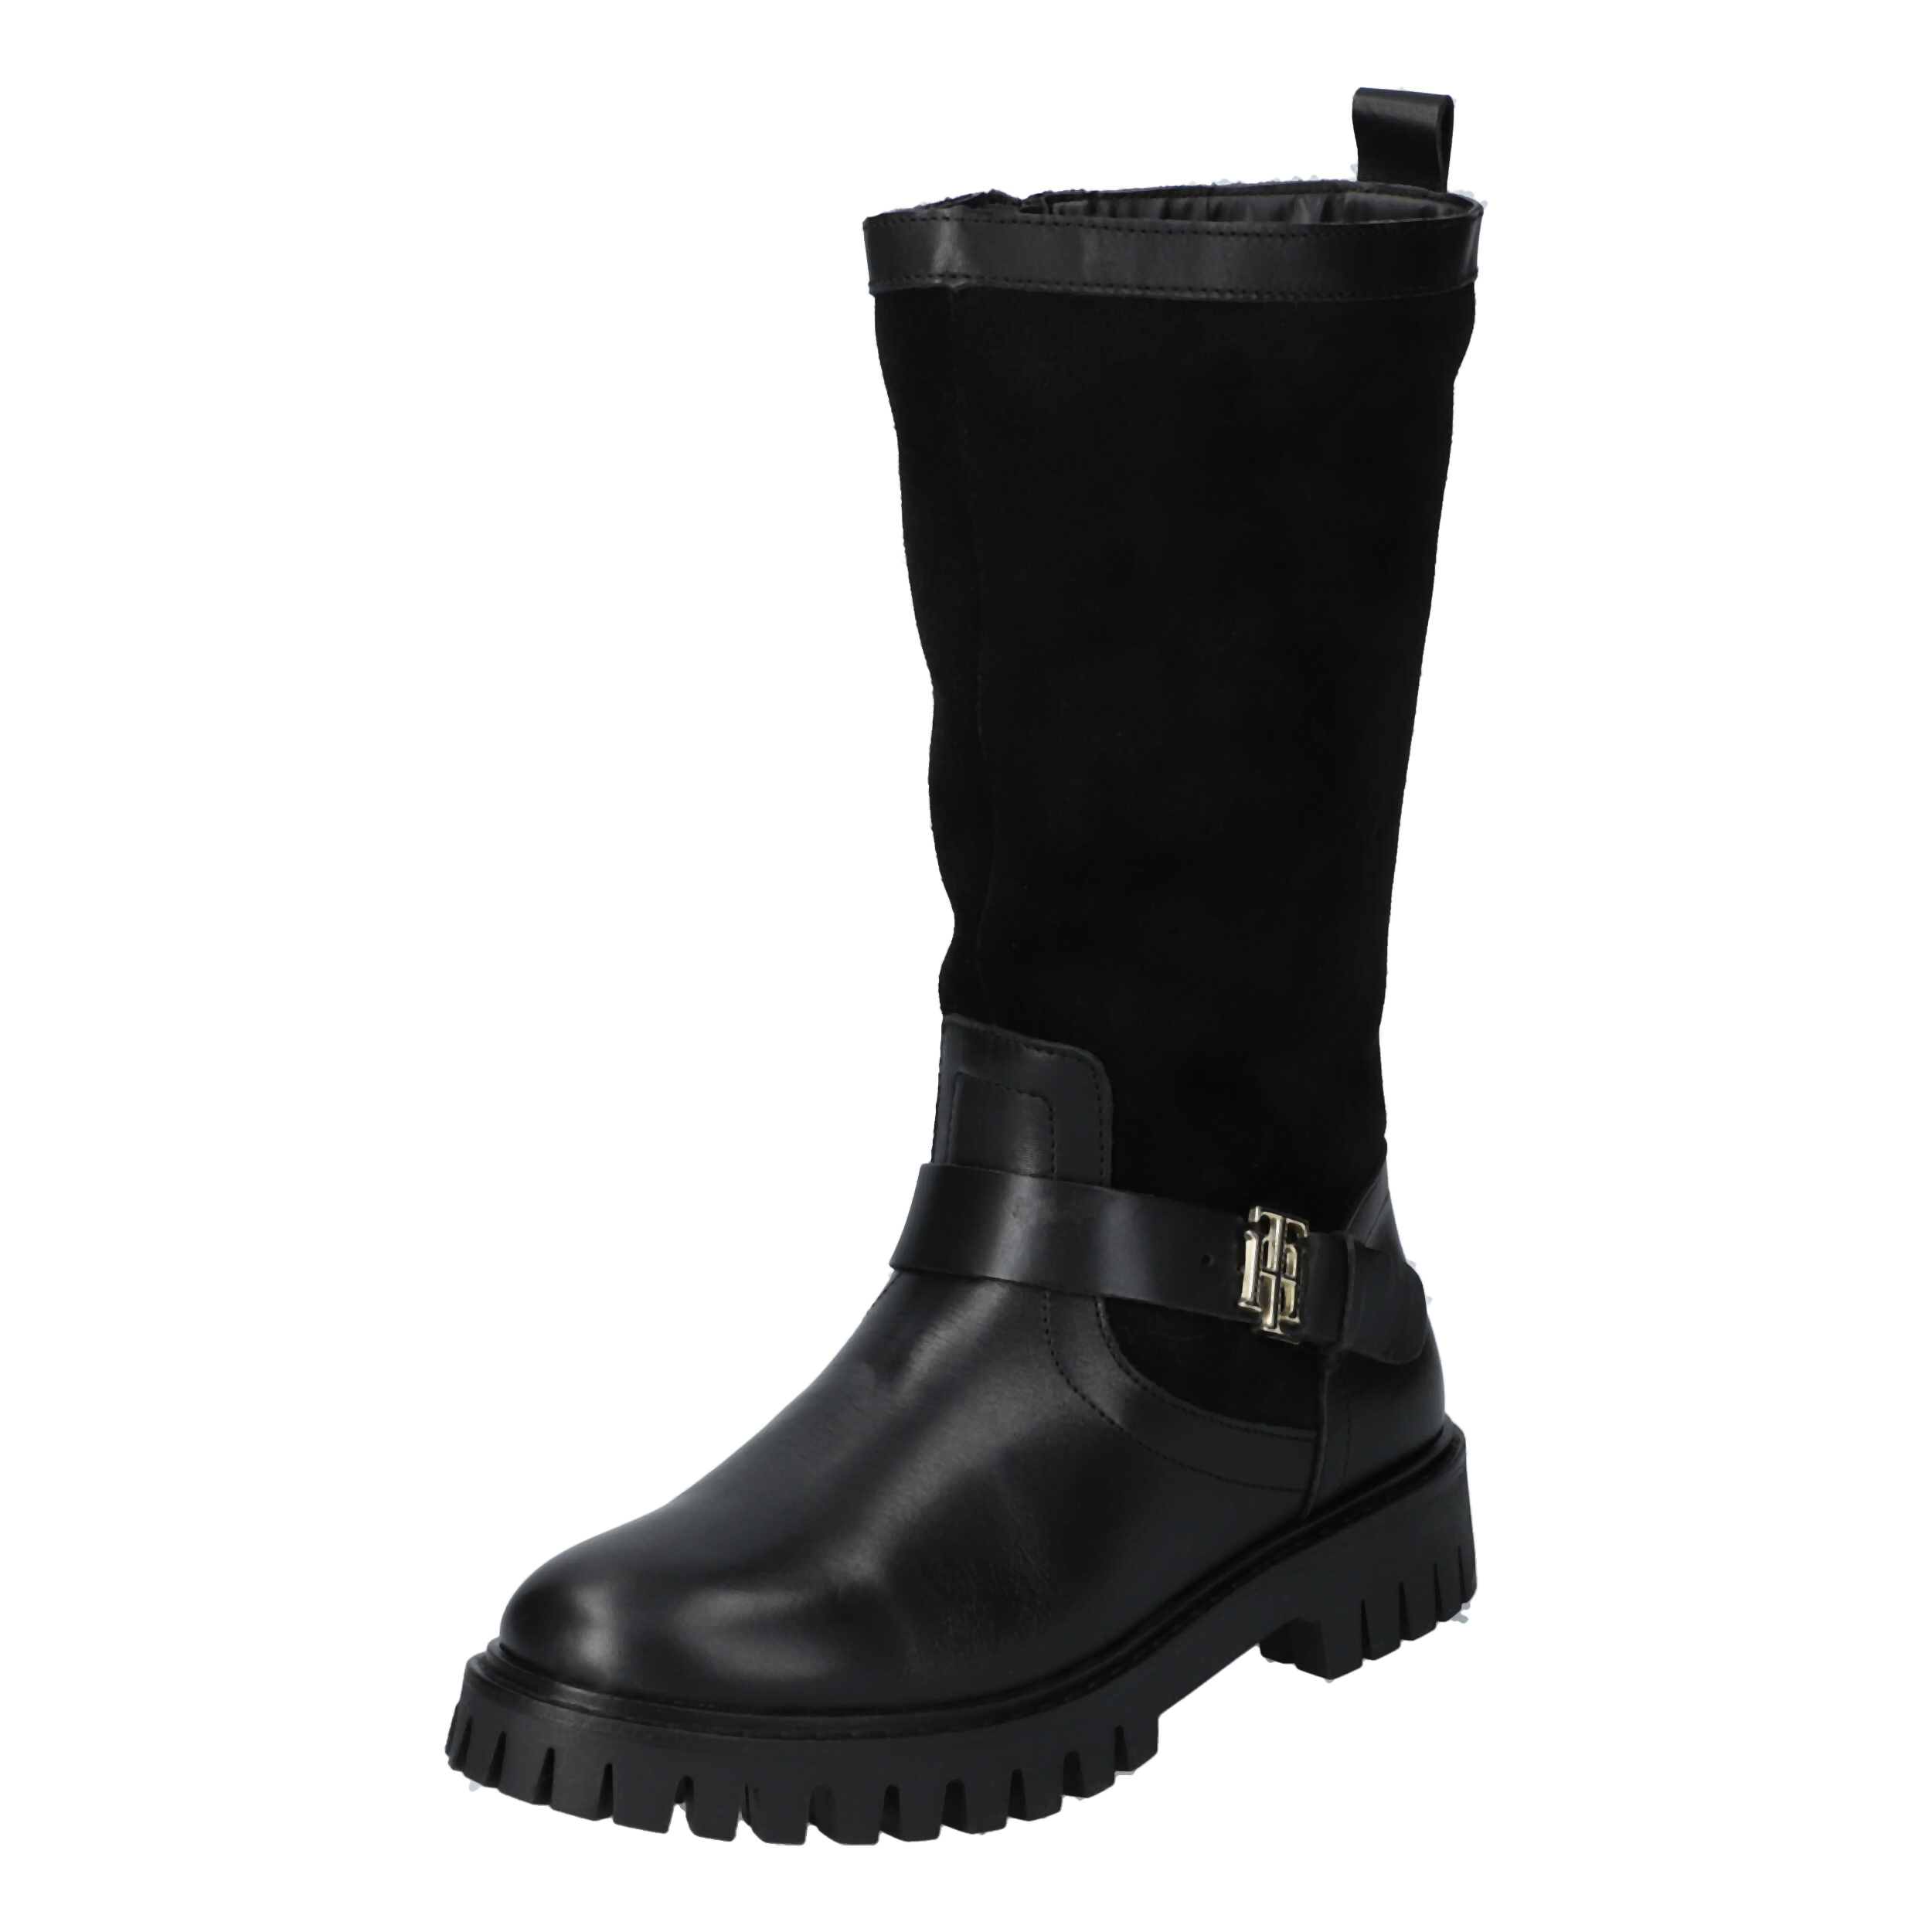 TH Hardware Material Mix Boot